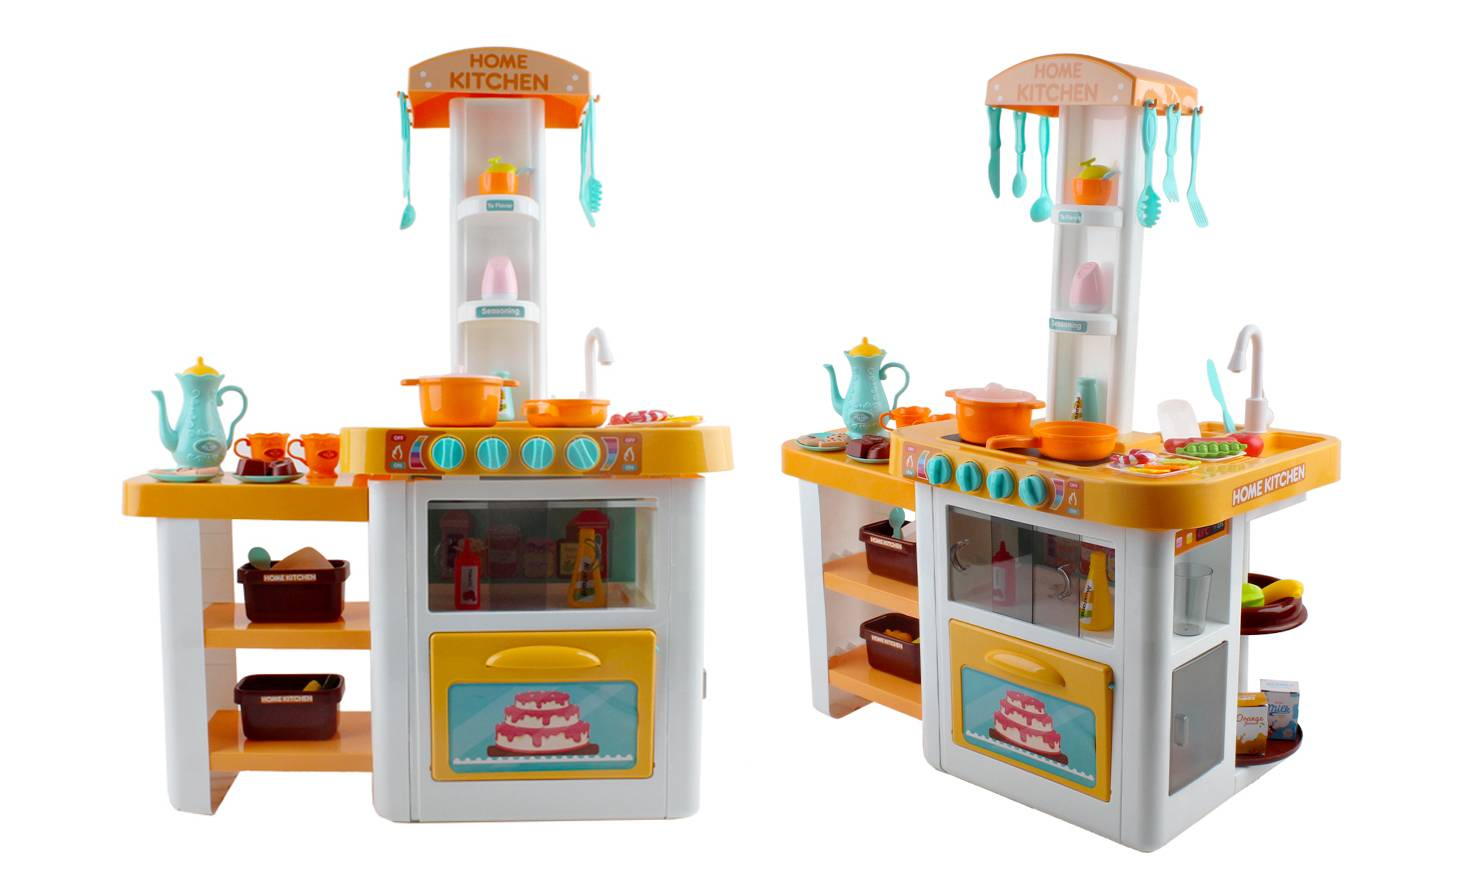 25.99 Kids Kitchen Playset with Lights, Sounds and Accessories